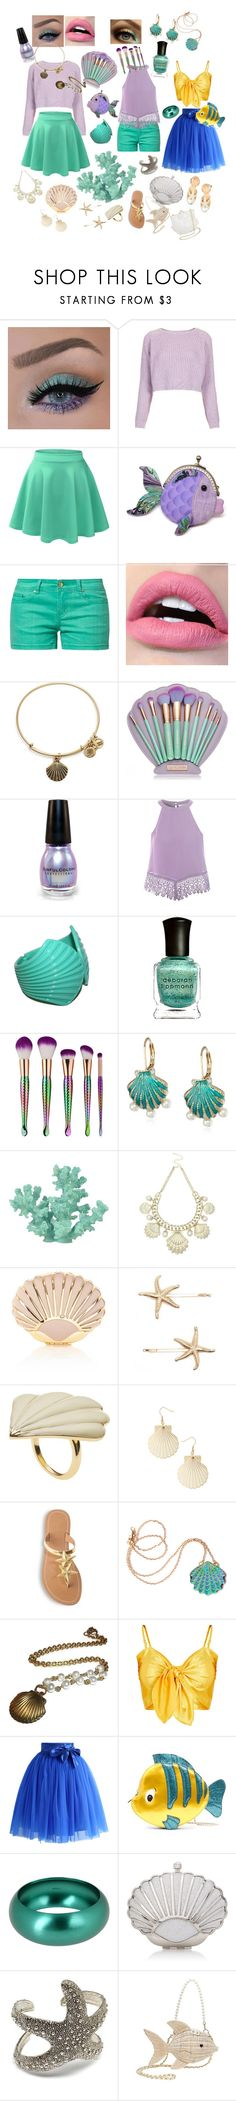 """""""Ariel"""" by sparrino ❤ liked on Polyvore featuring Topshop, even&odd, Alex and Ani, Glamorous, Deborah Lippmann, My Makeup Brush Set, Betsey Johnson, Sonoma life + style, Oasis and Coast"""